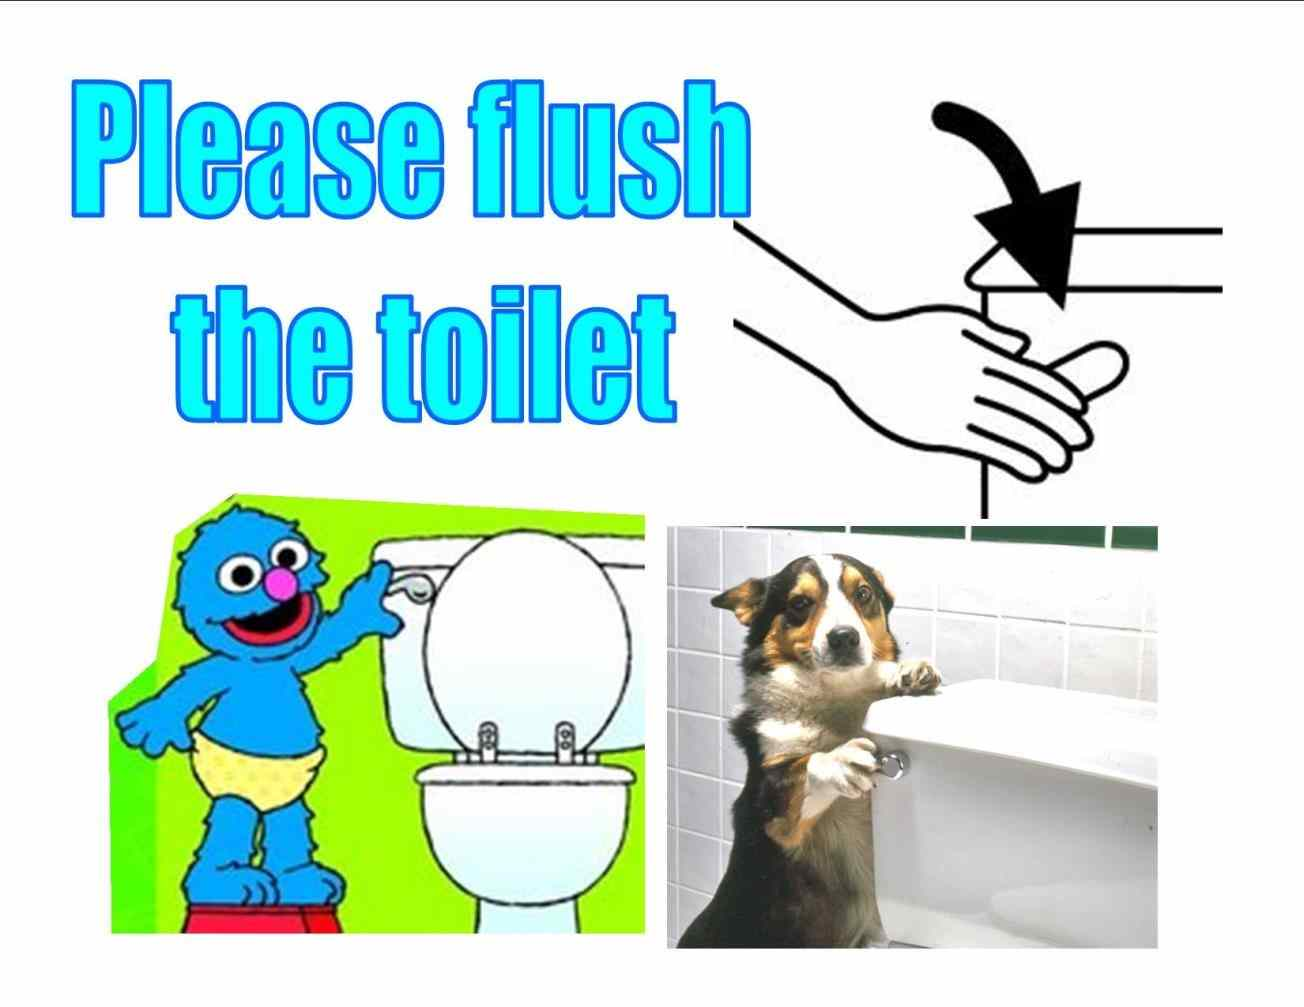 Toilet clipart clip art. The images collection of